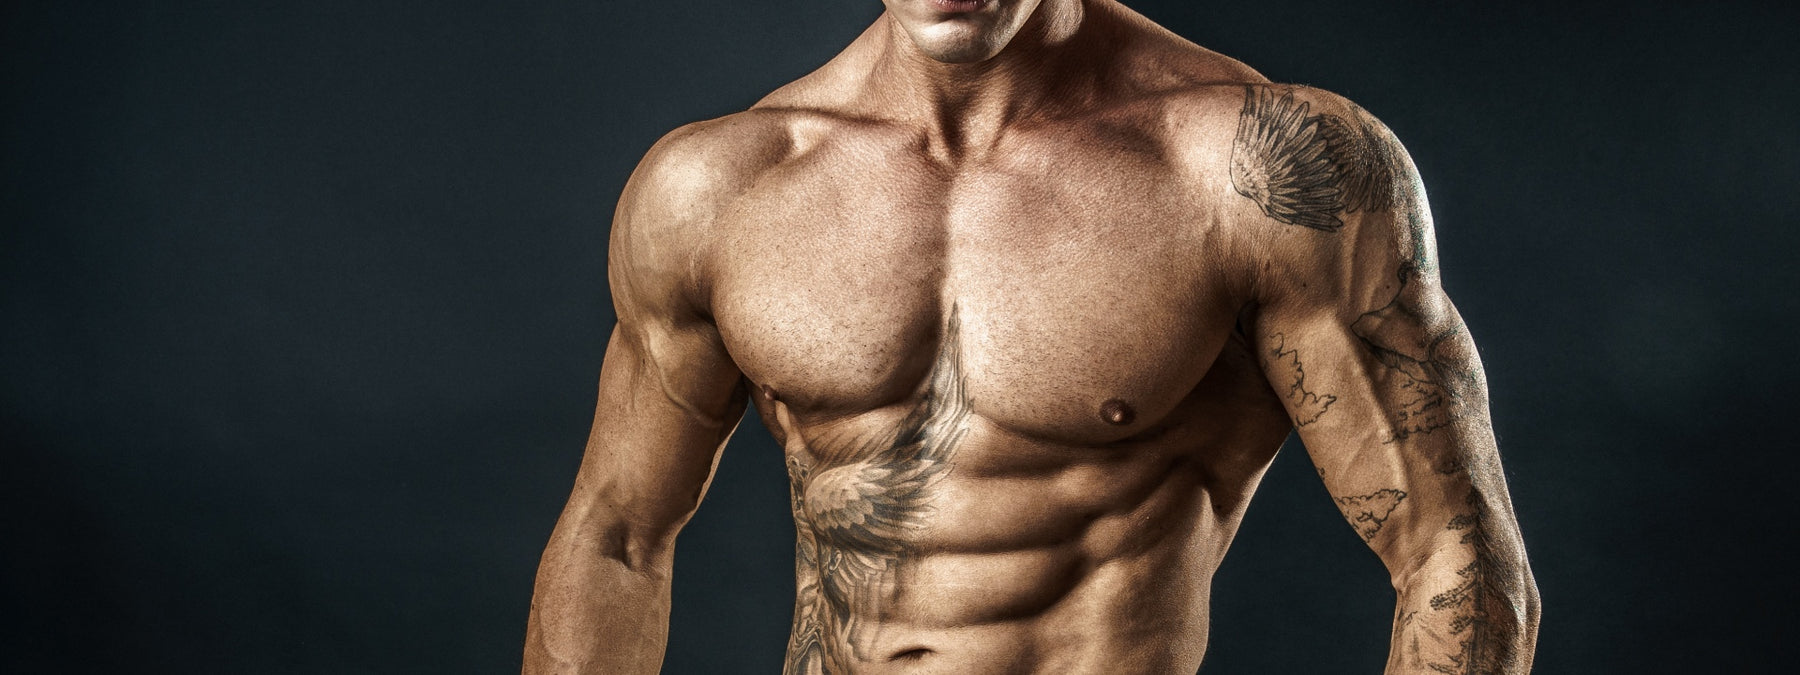 Get Shredded: 5 Methods For Successful Fat Loss